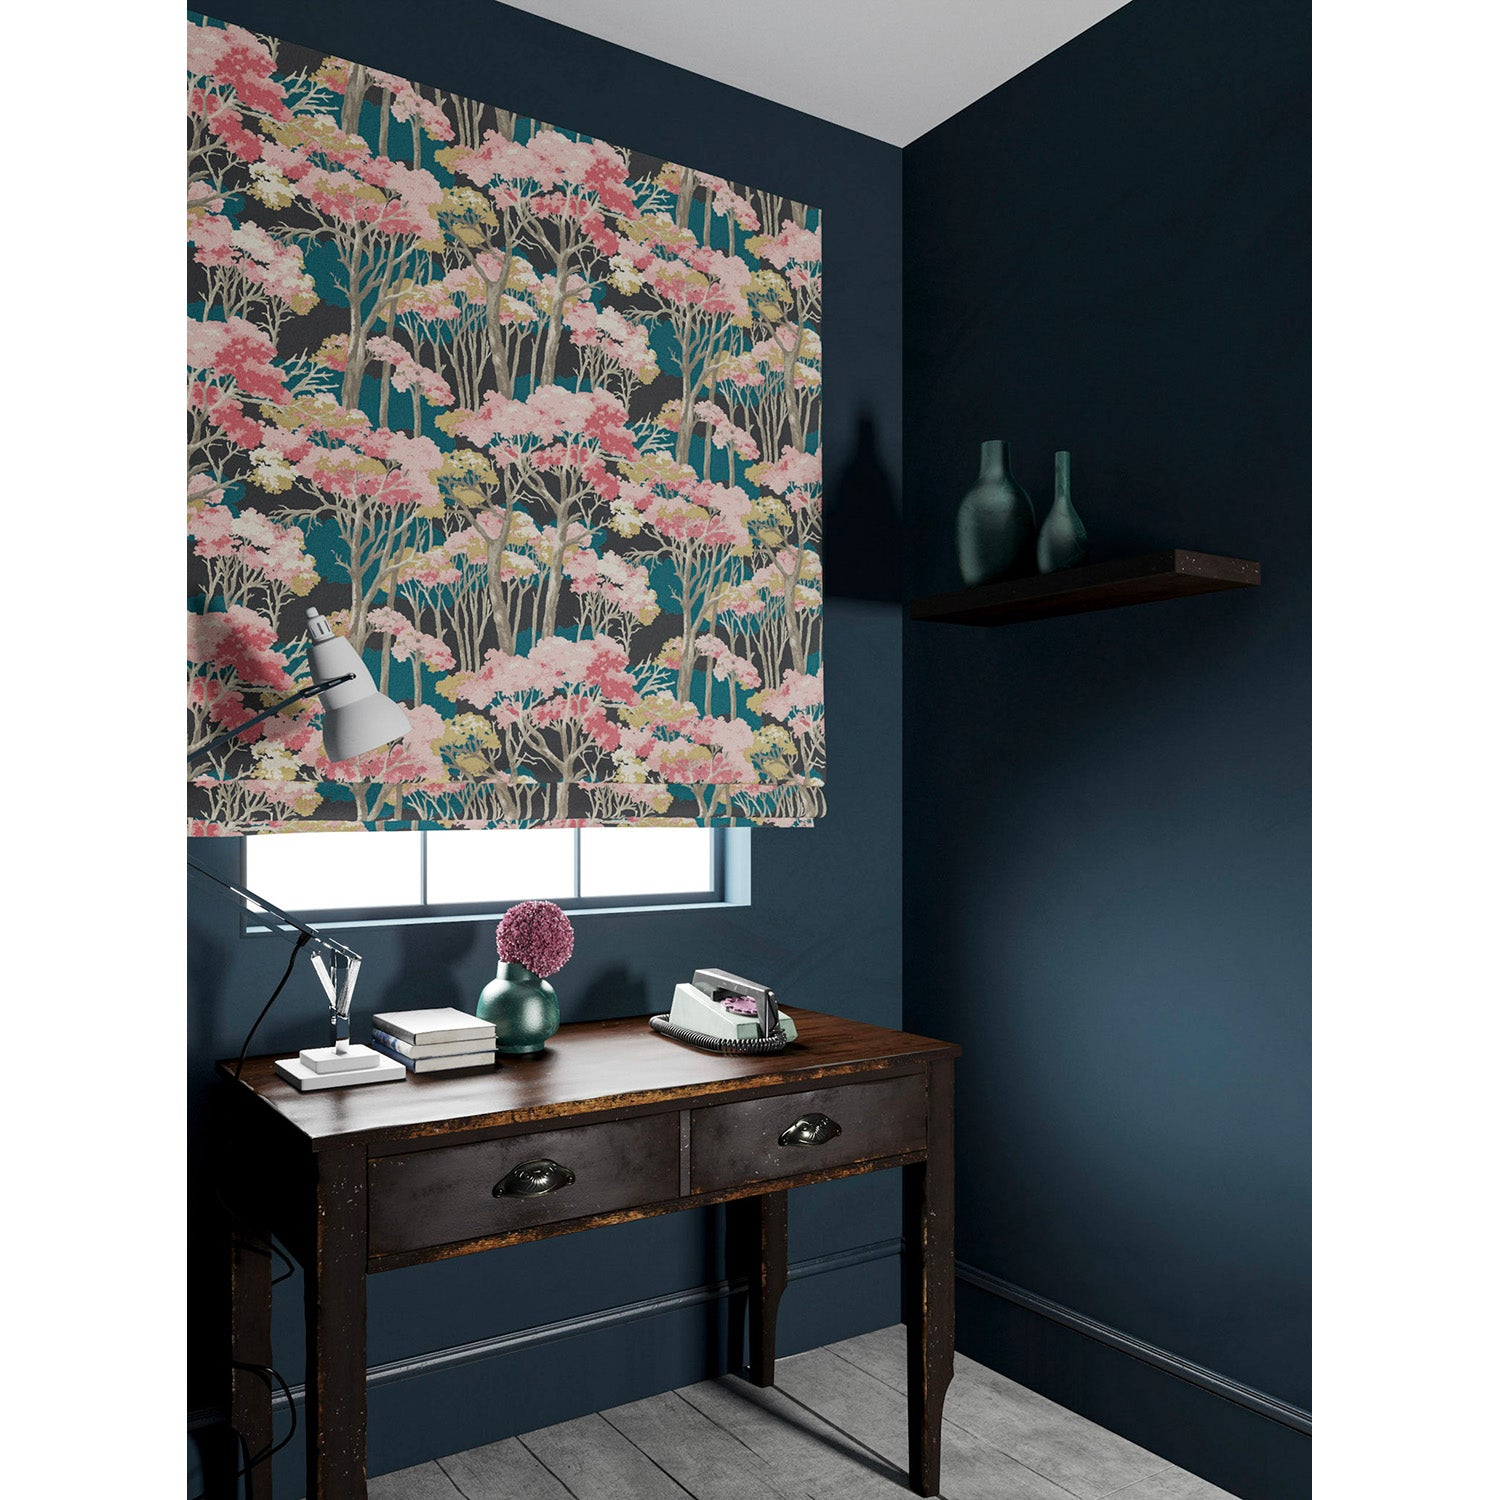 Velvet blind in a dark blue and pink velvet fabric with stain resistant finish and tree design